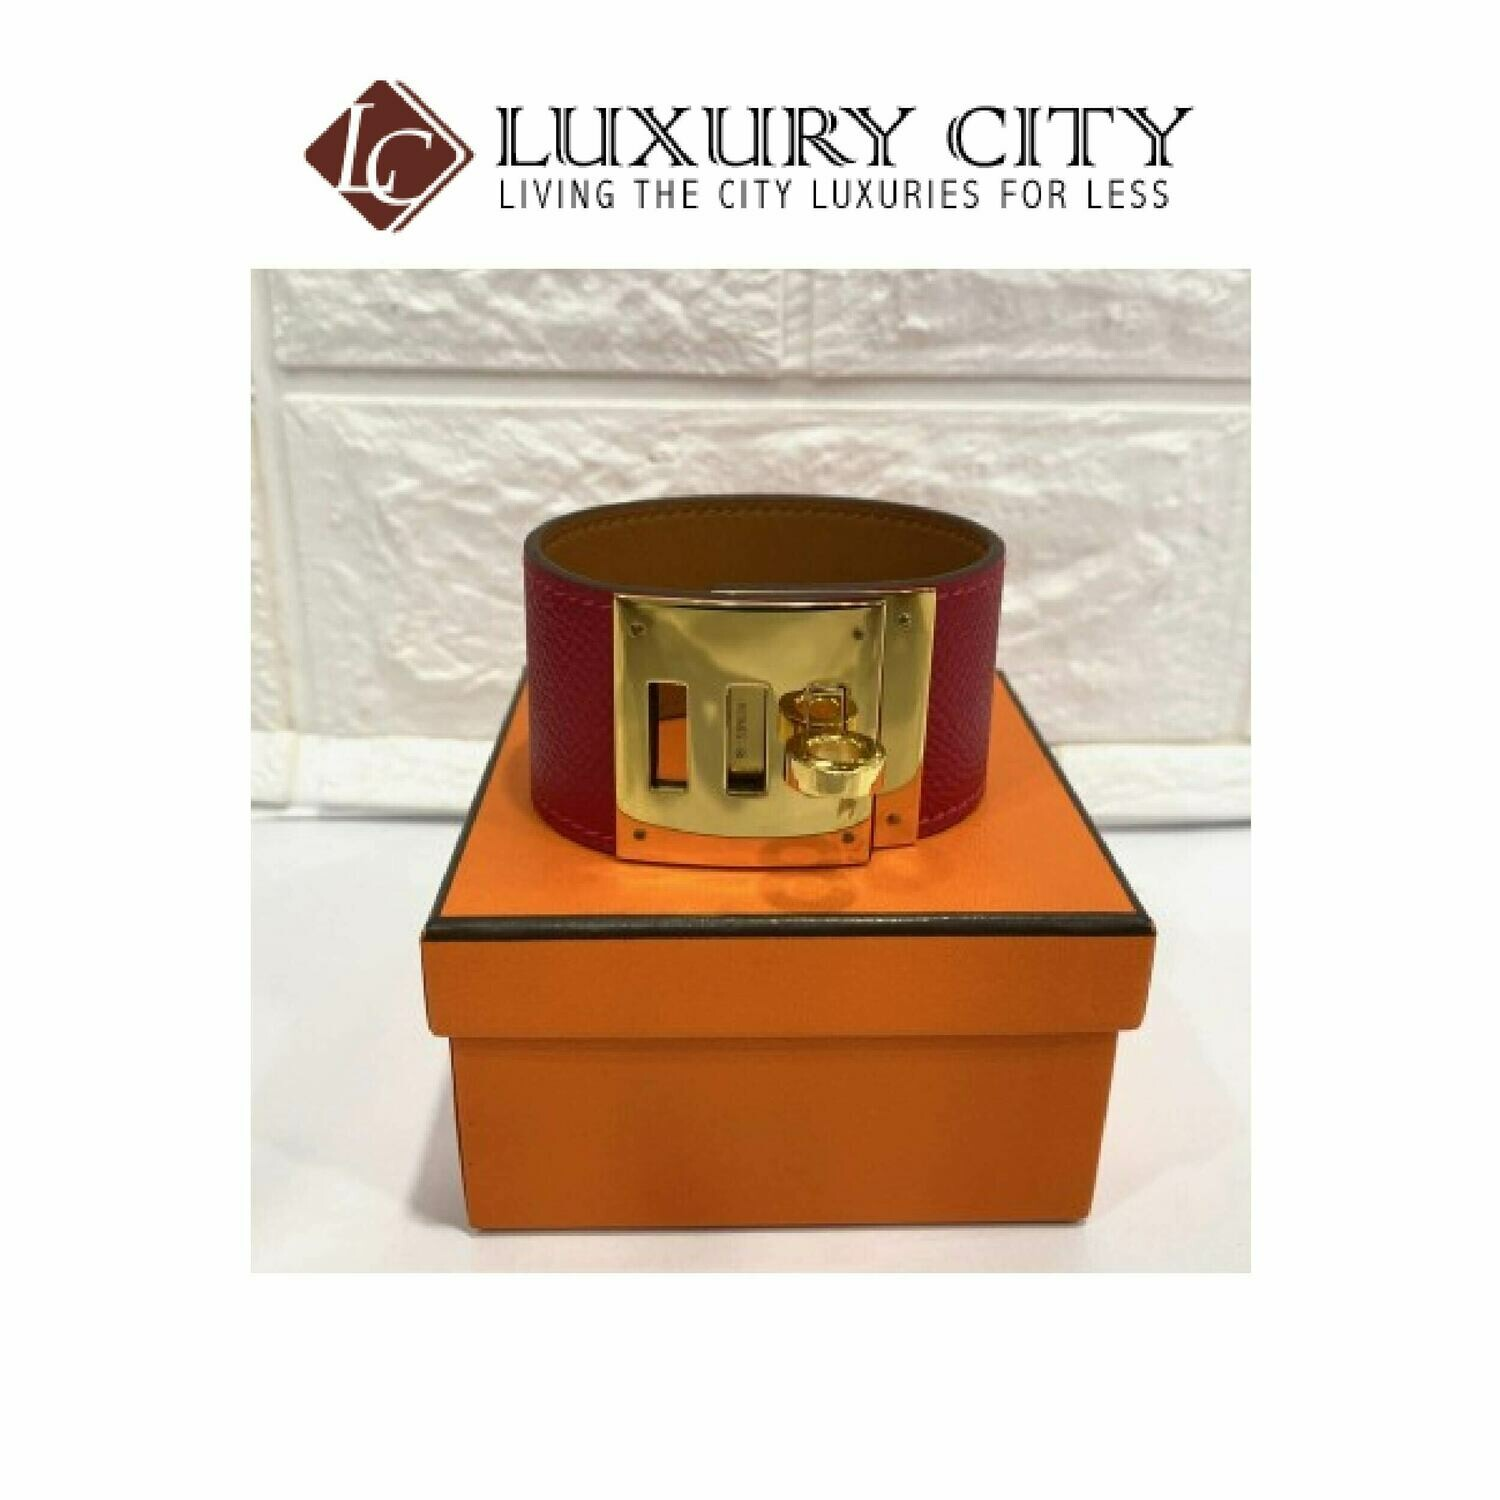 [Luxury City] Preloved Almost Like New Hermes Kelly Dog Bracelet